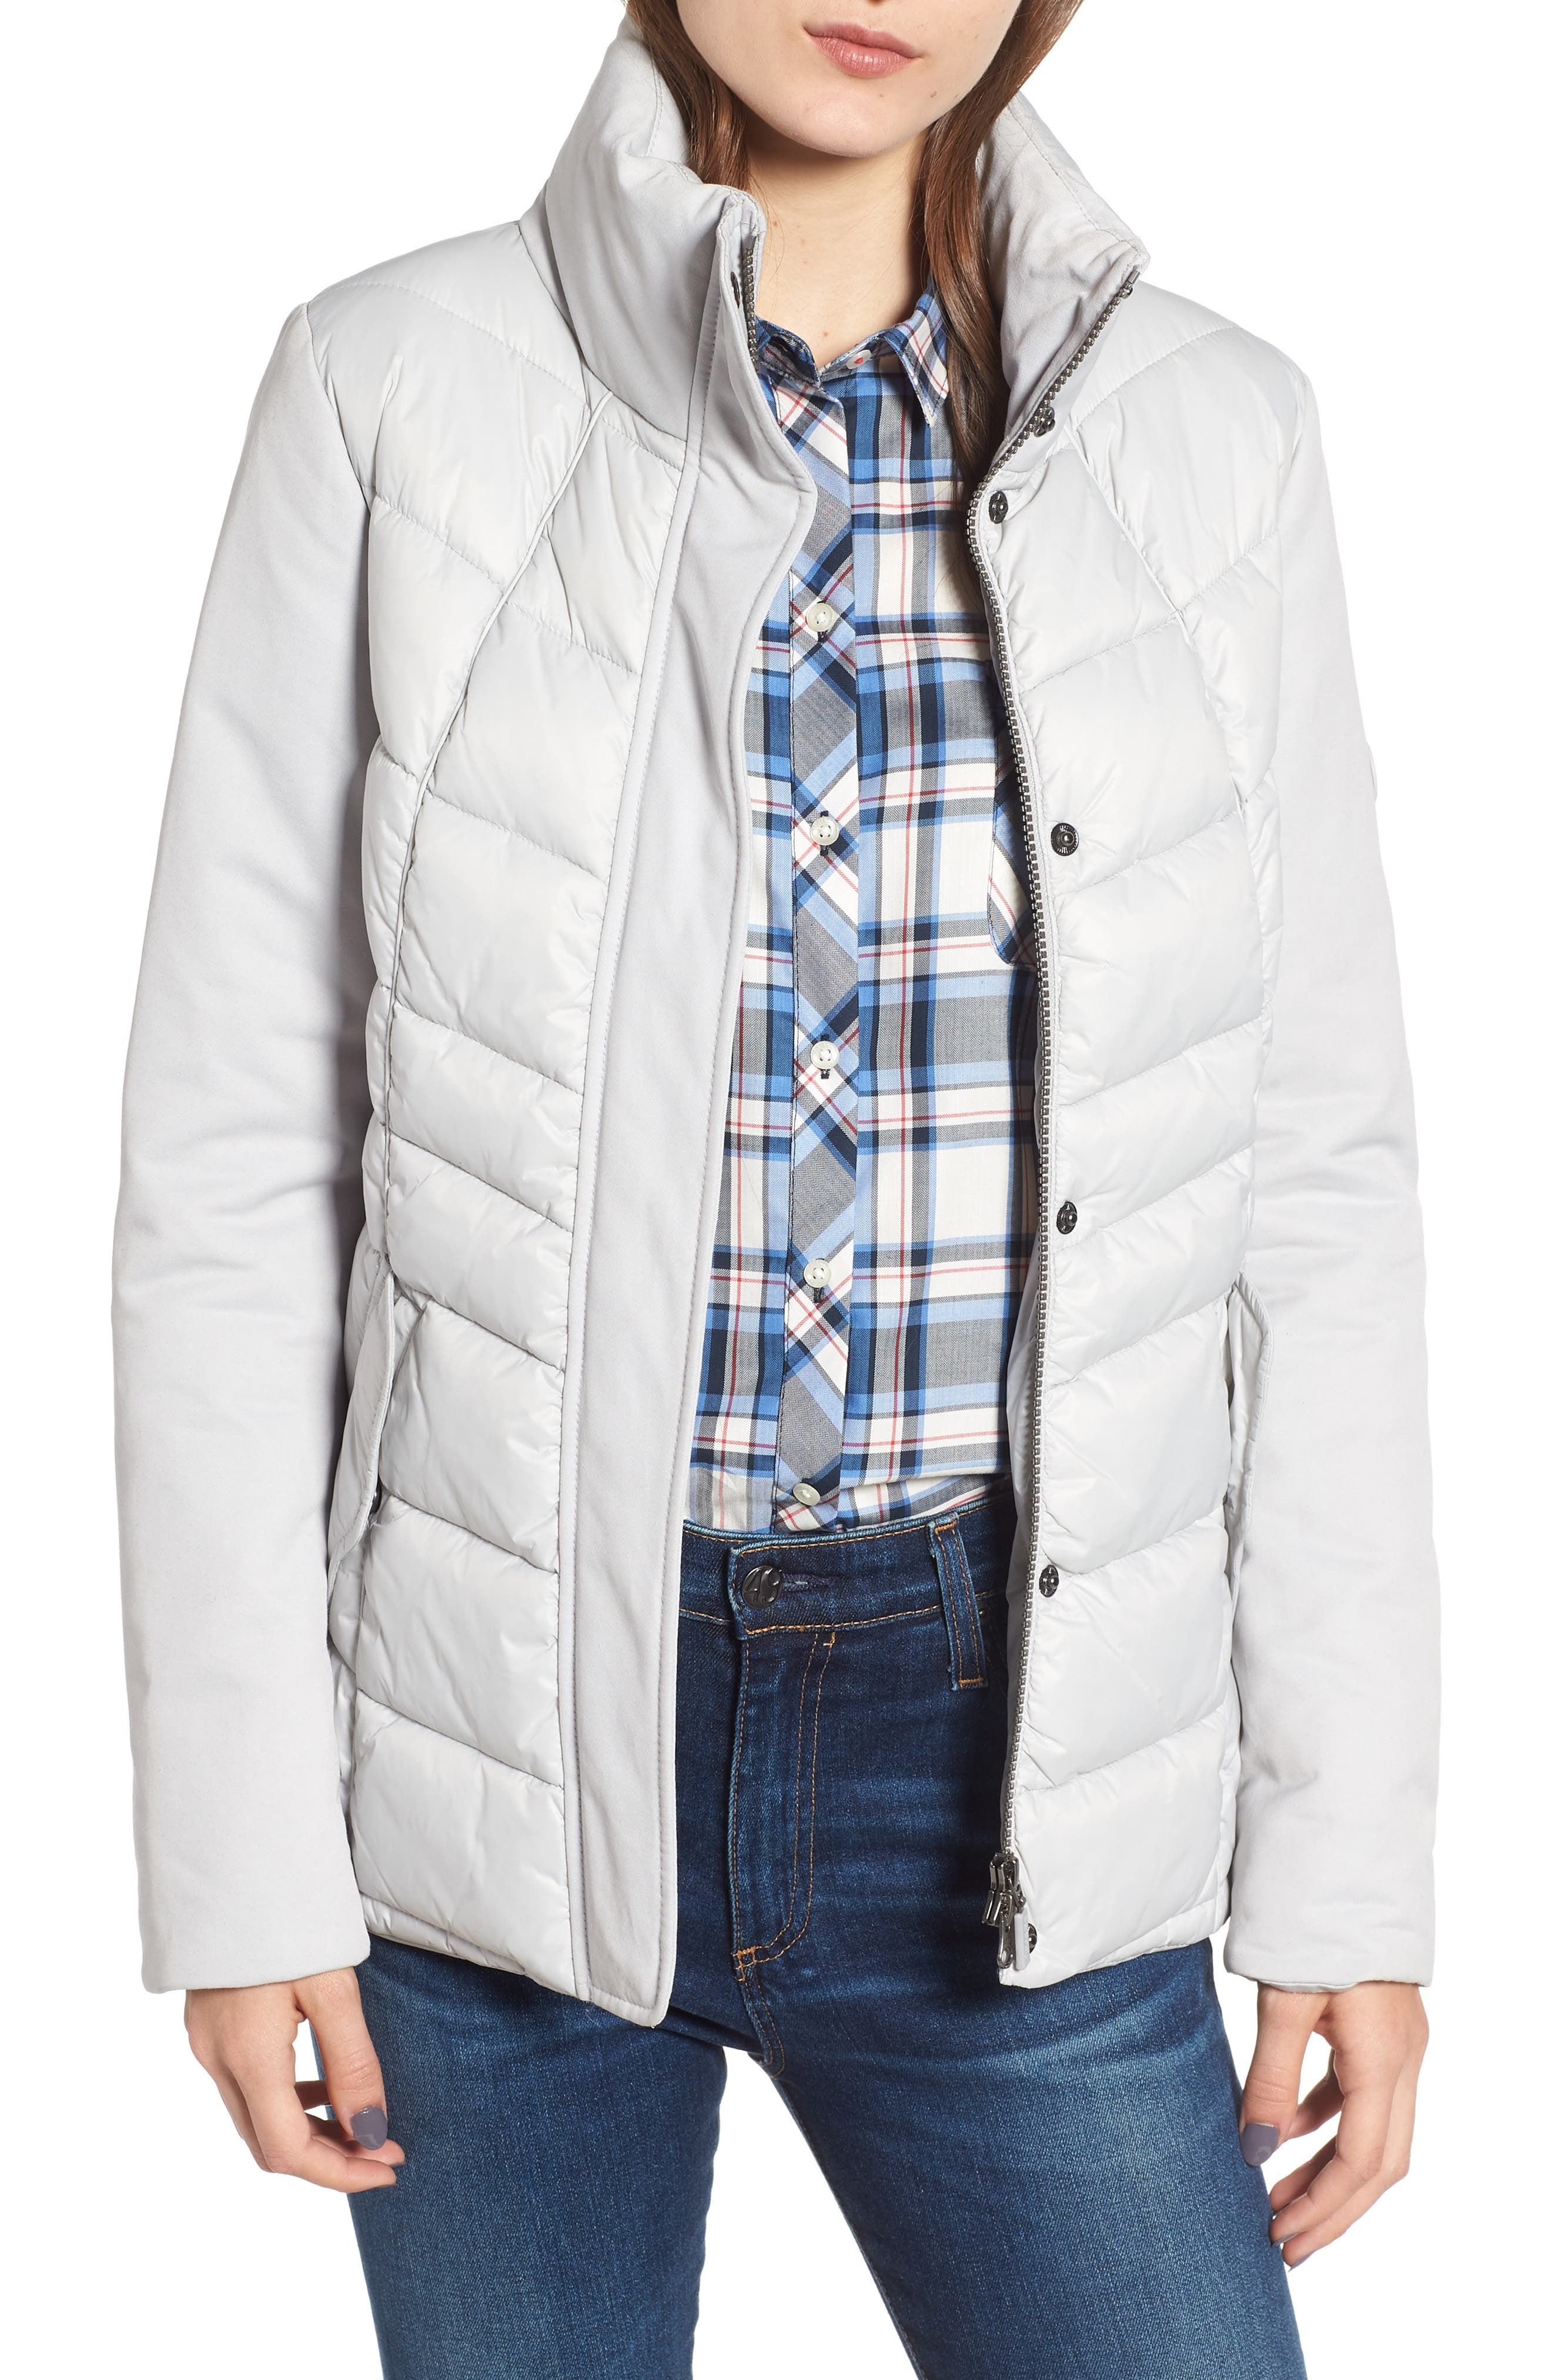 Barbour Hayle Quilted Jacket, US / 8 UK - White